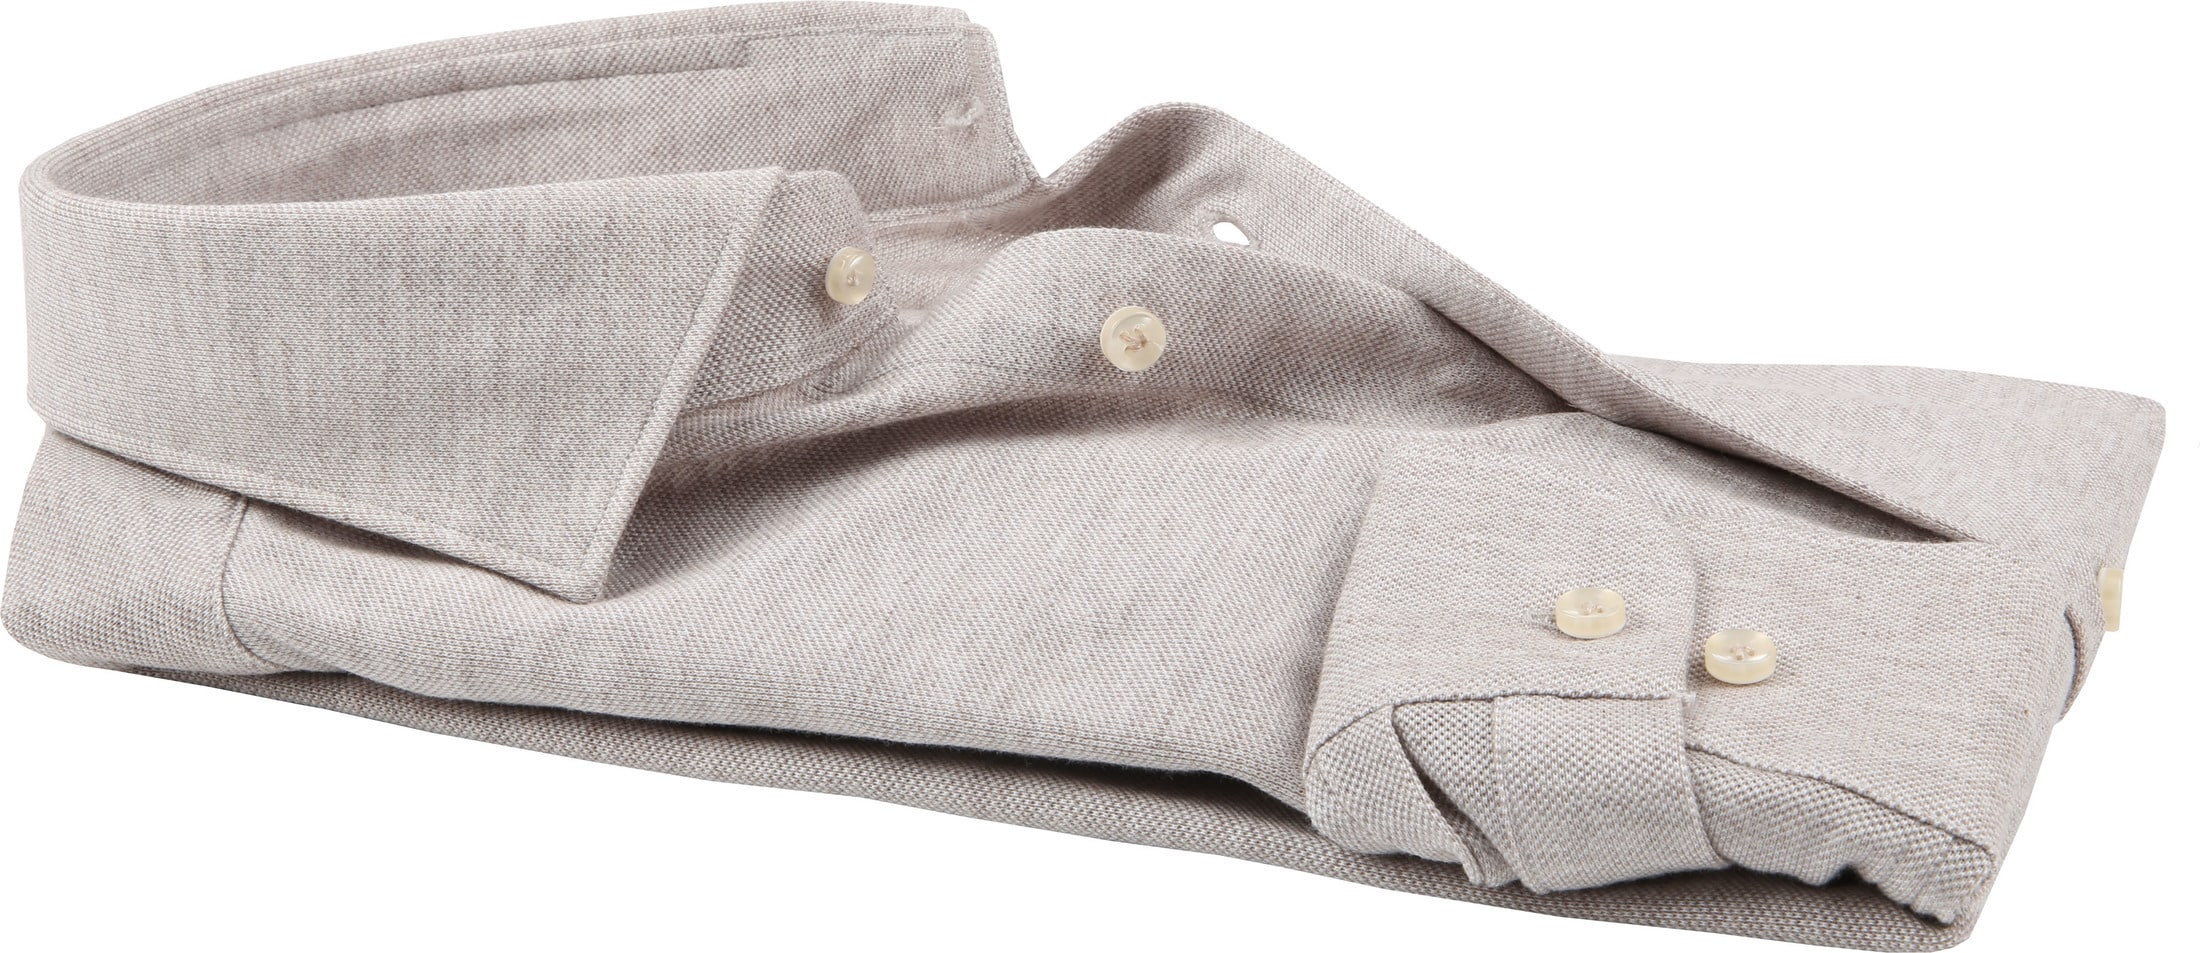 Profuomo Shirt Knitted Beige foto 3